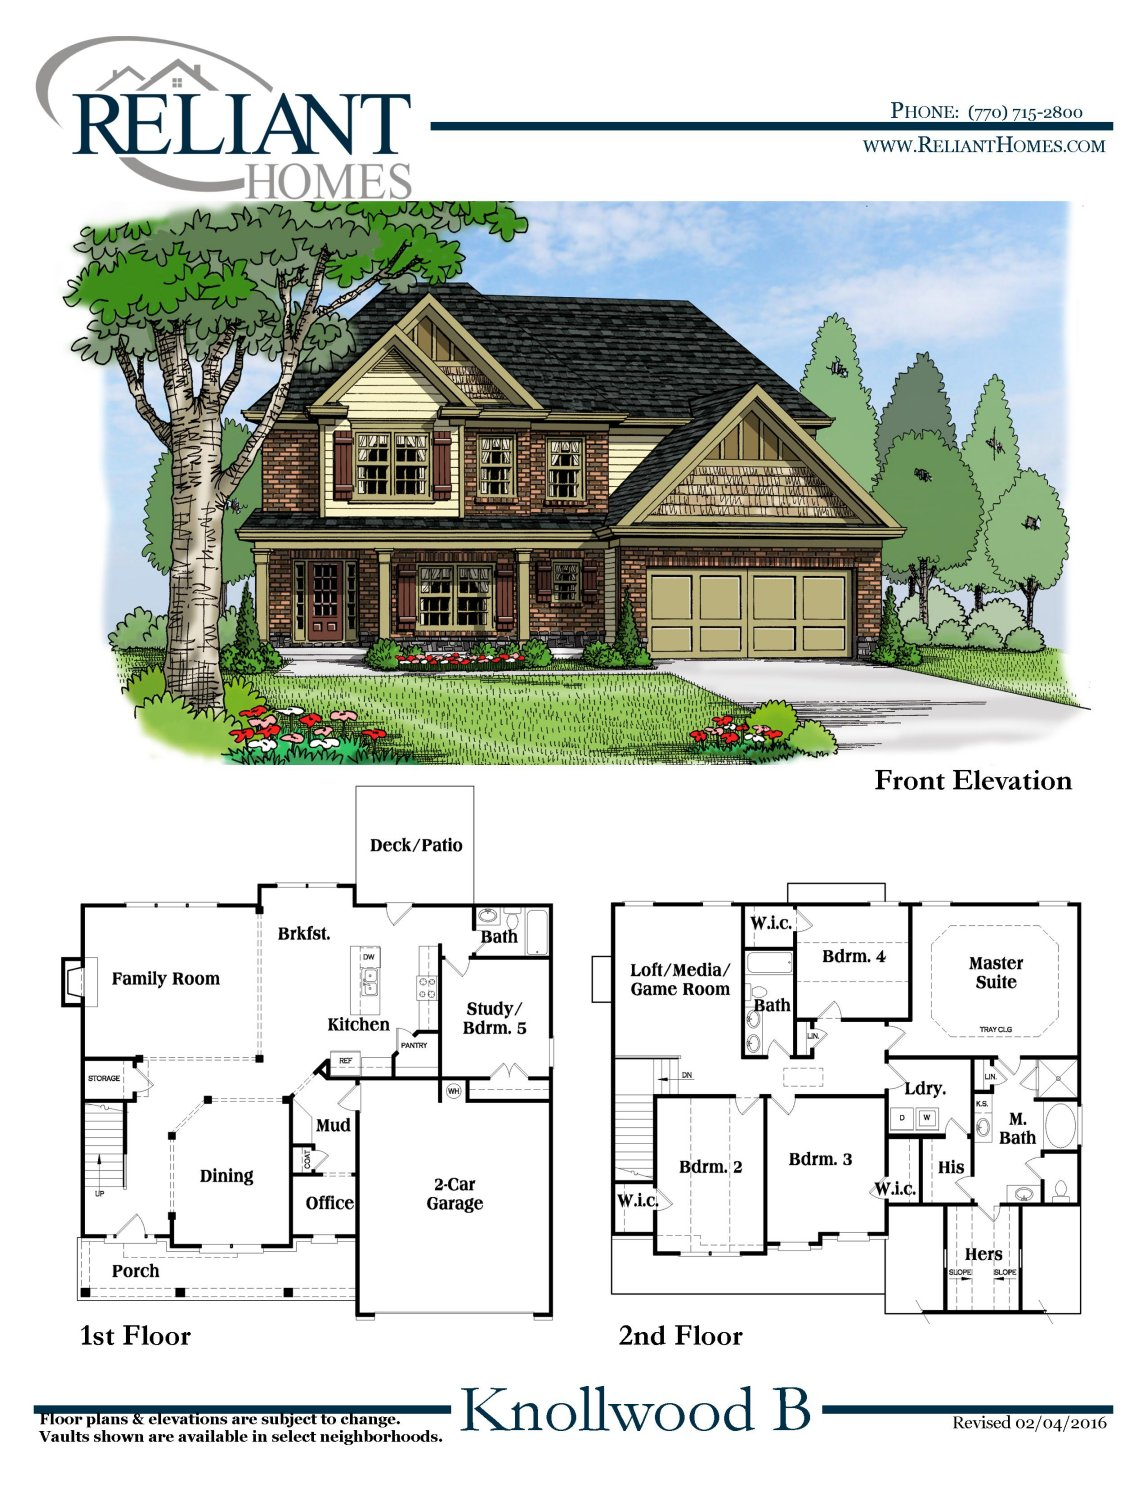 Knollwood b fe reliant homes new homes in atlanta for Reliant homes floor plans